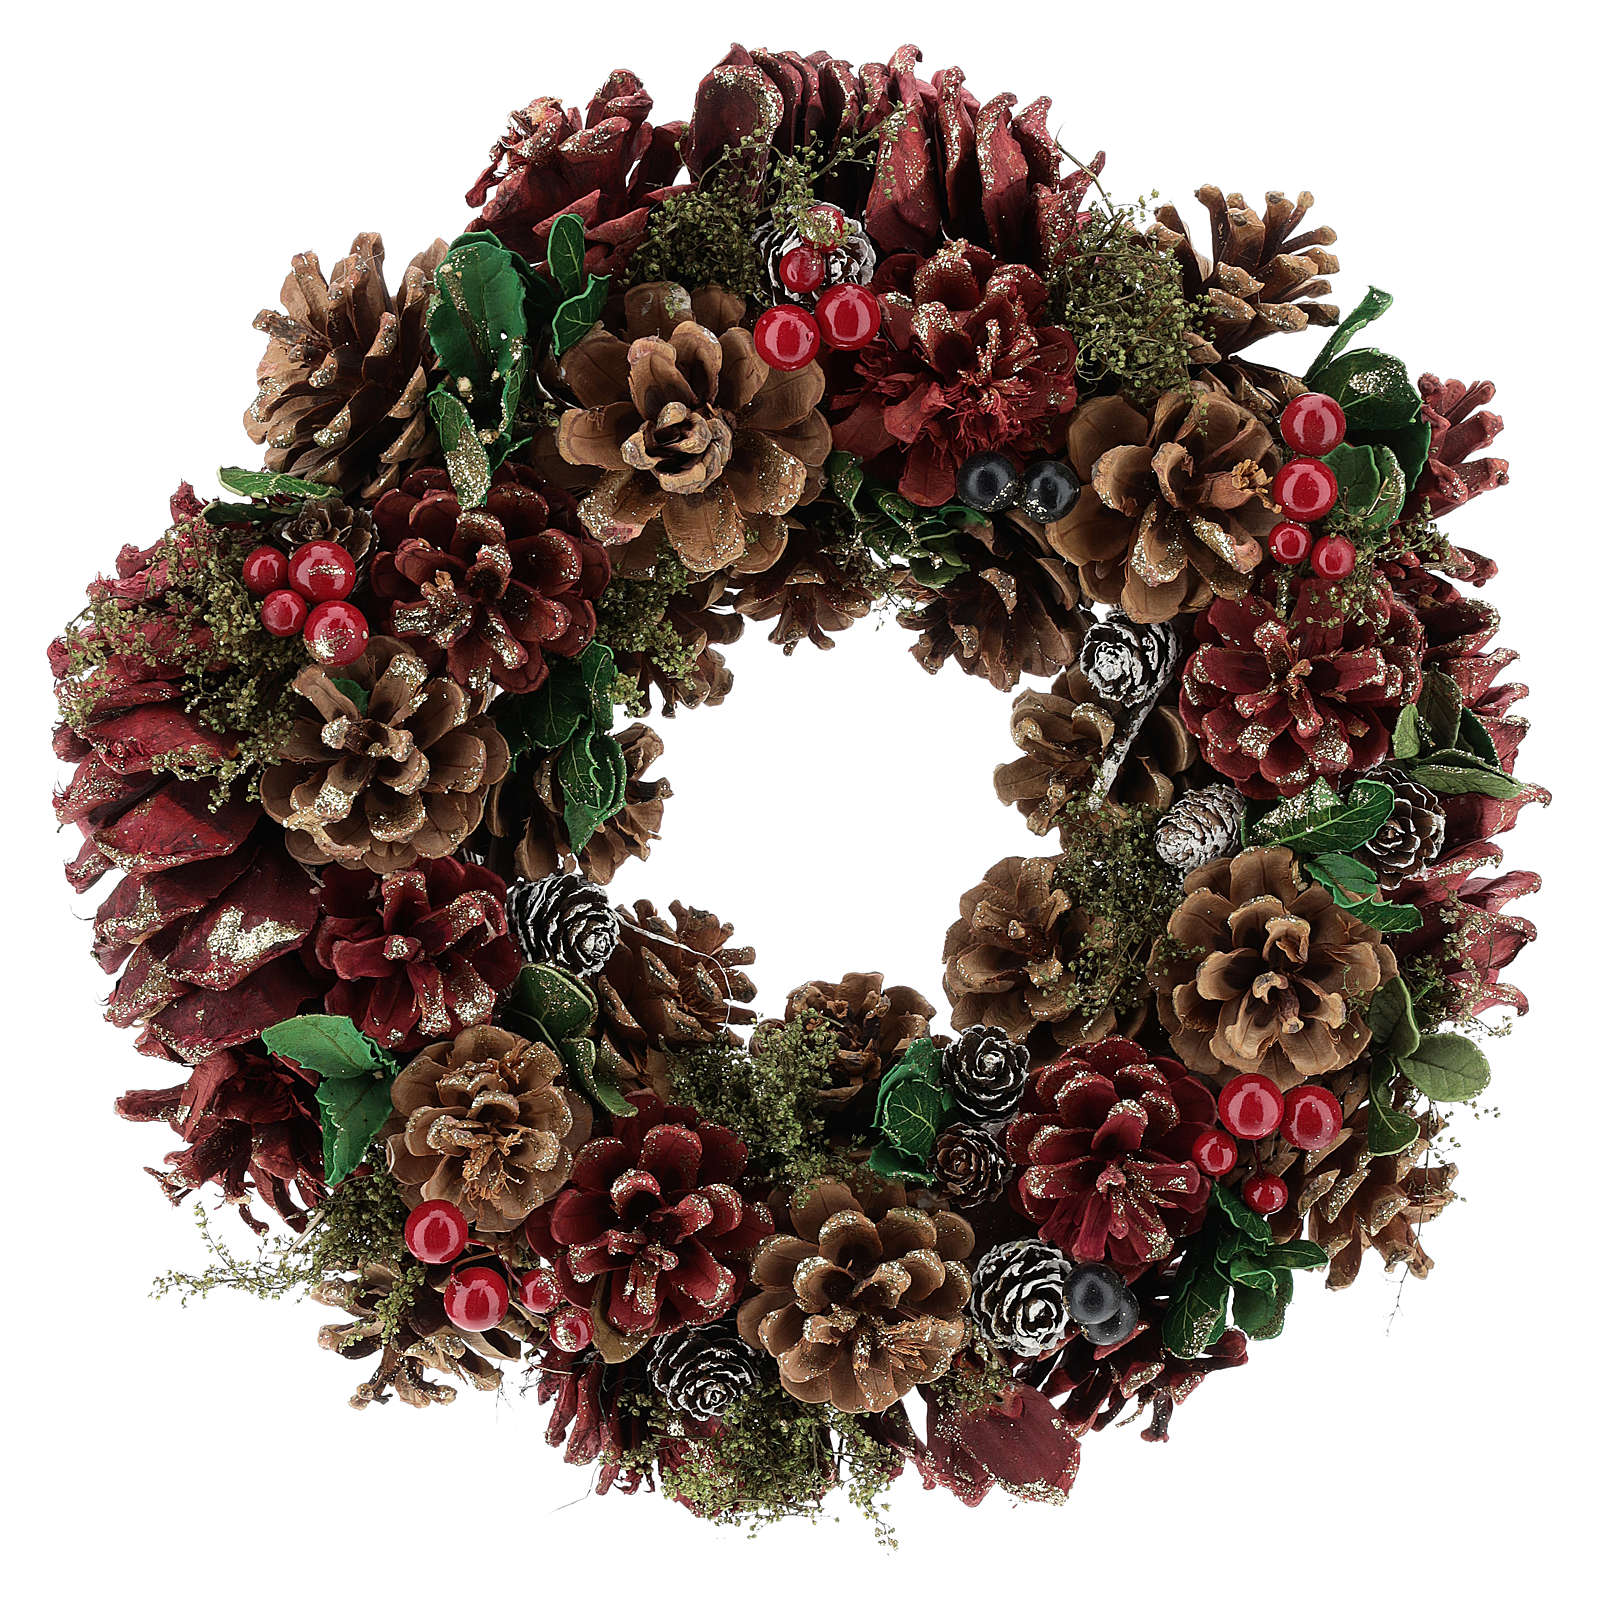 Advent wreath with pine cones and berries 30 cm in diameter Red finish 3